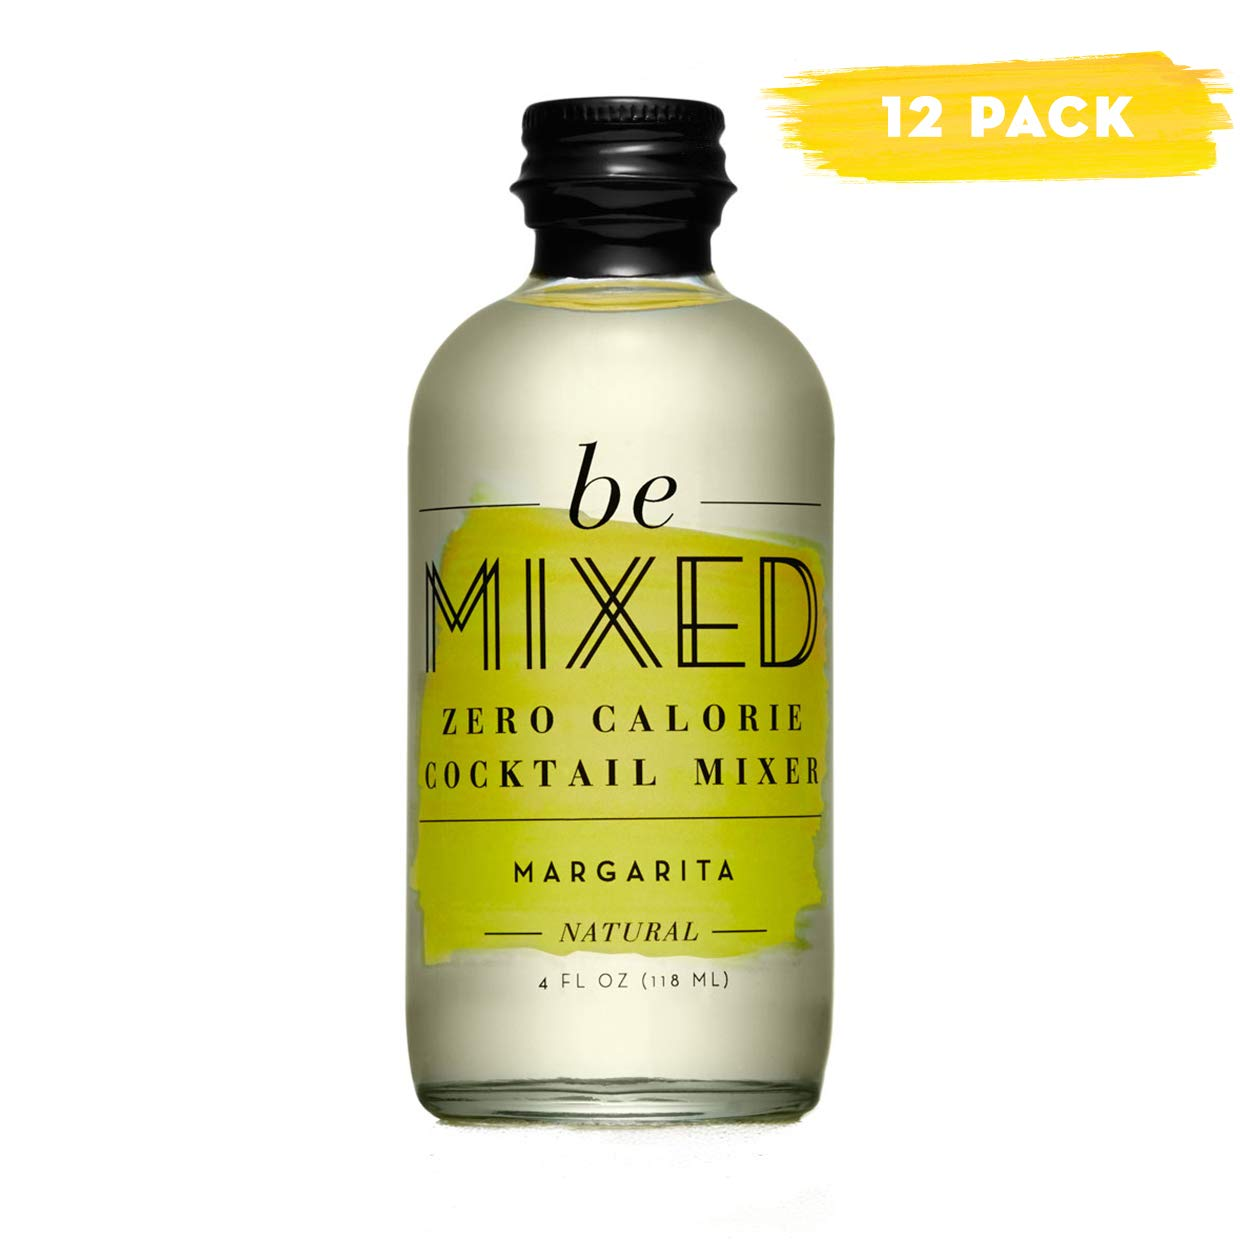 Zero Calorie Margarita Cocktail Mixer by Be Mixed, Low Carb, Keto Friendly, Sugar Free and Gluten Free Drink Mix, 4 Fl Oz Glass Bottles, Pack of 12 by Be Mixed